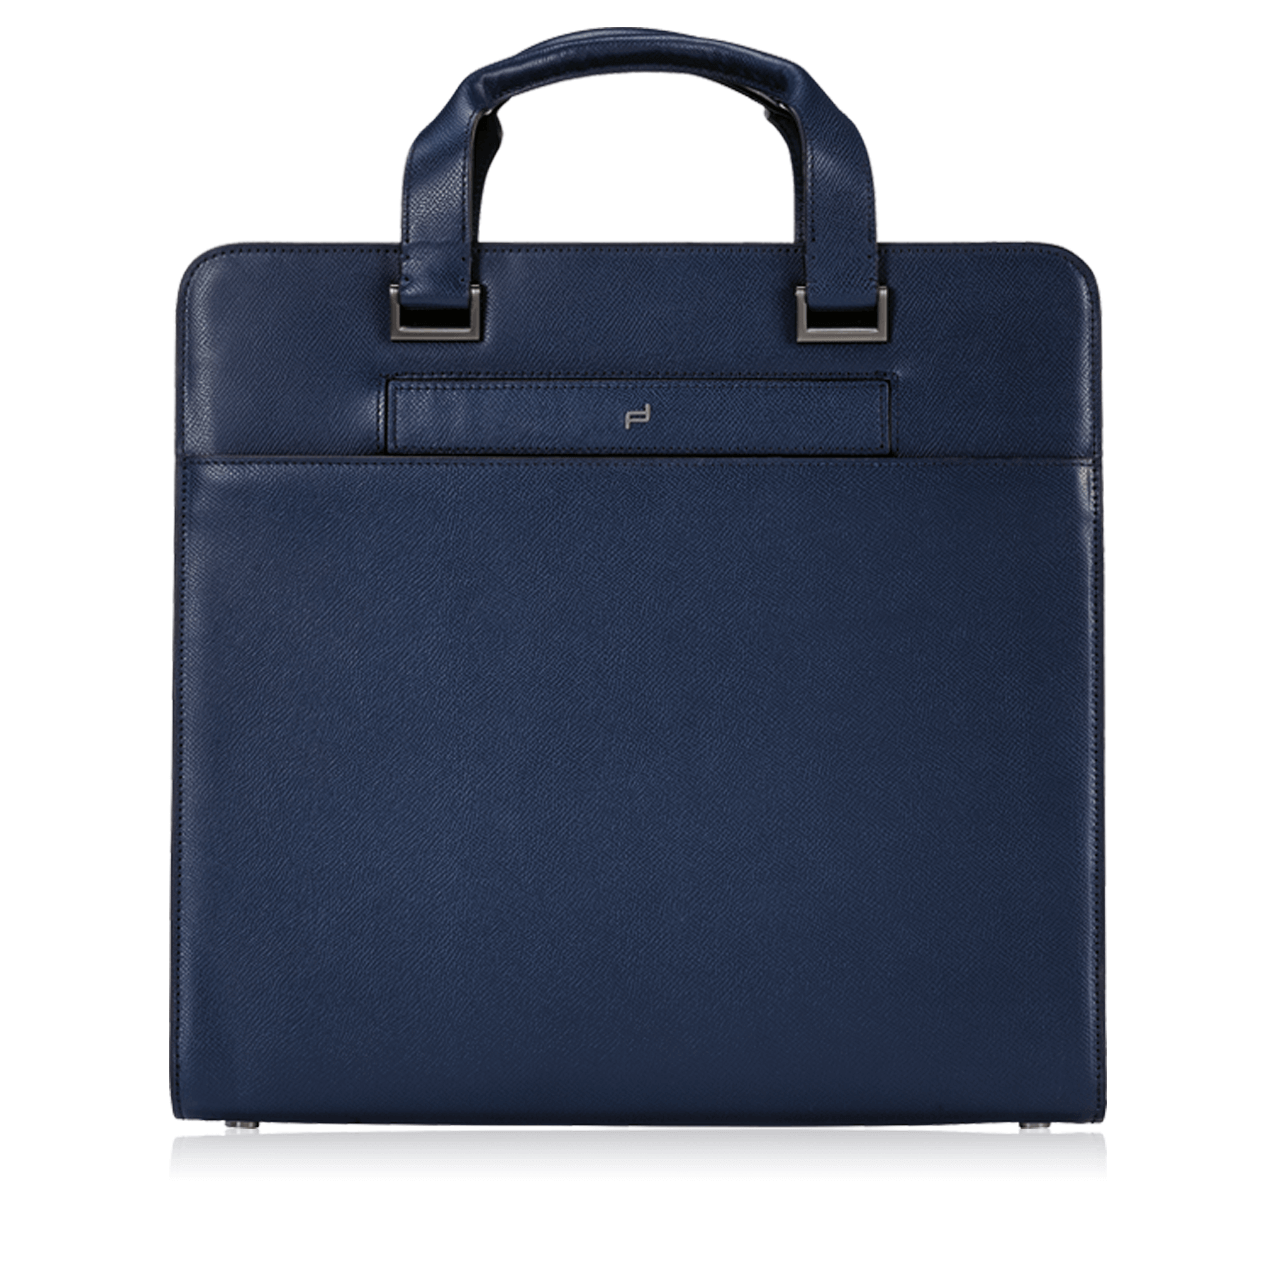 SKYLINE BRIEFBAG MH - фото 1